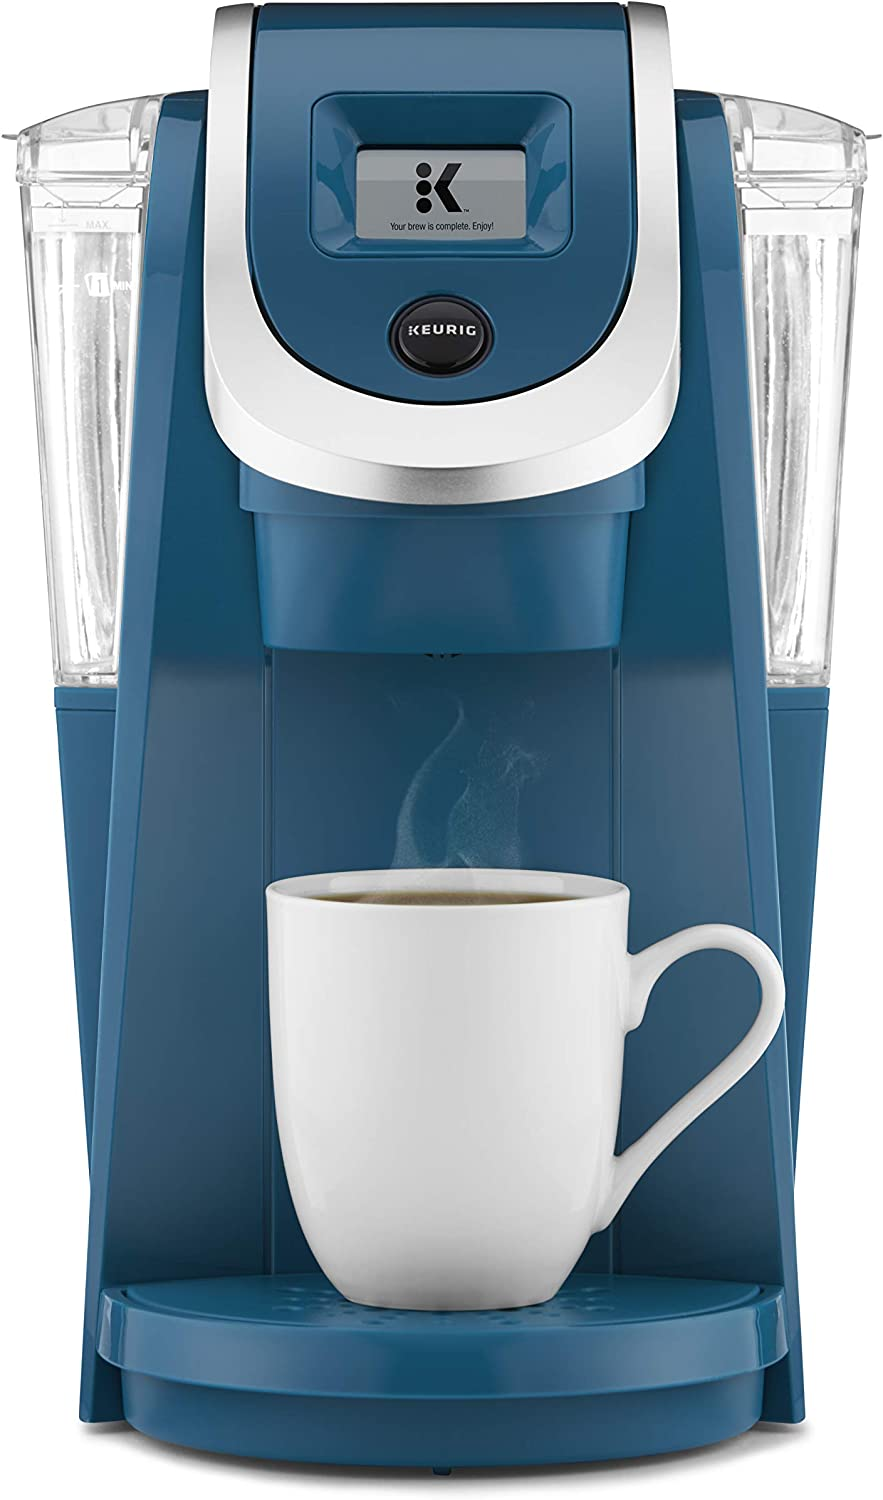 Keurig K200 Coffee Maker, Single Serve K-Cup Pod Coffee Brewer, With Strength Control, Peacock Blue (Renewed)